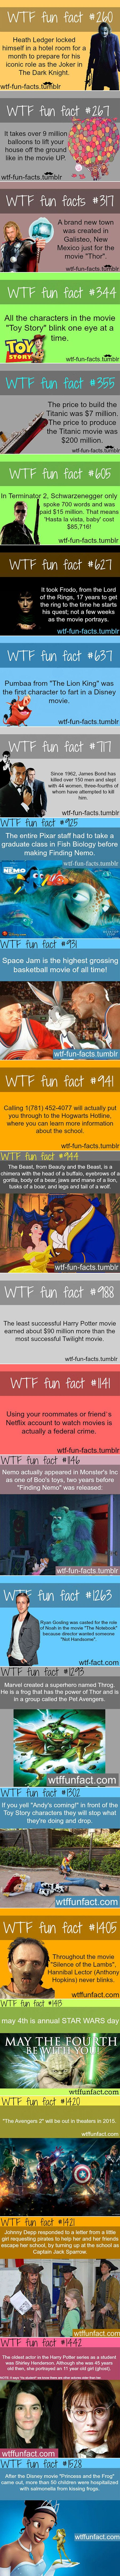 Here are some fun and random tv, movie, comic book facts that might surprise you